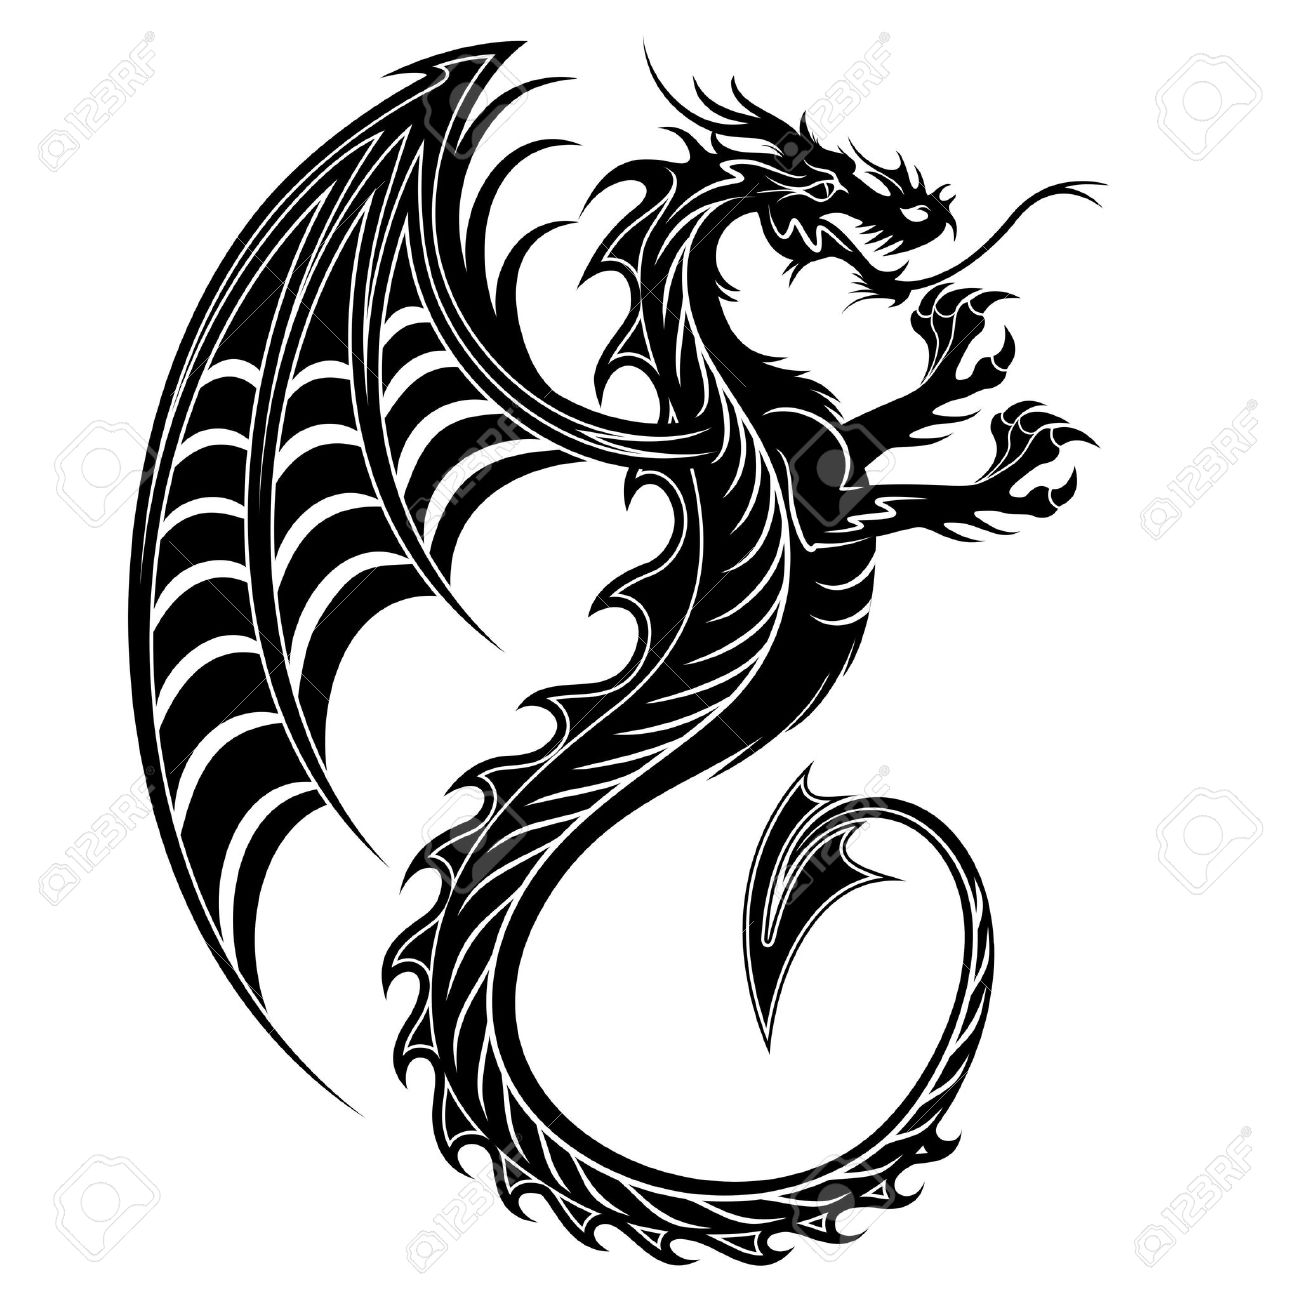 Dragon Tattoo Symbol 2012 Royalty Free Cliparts Vectors And Stock